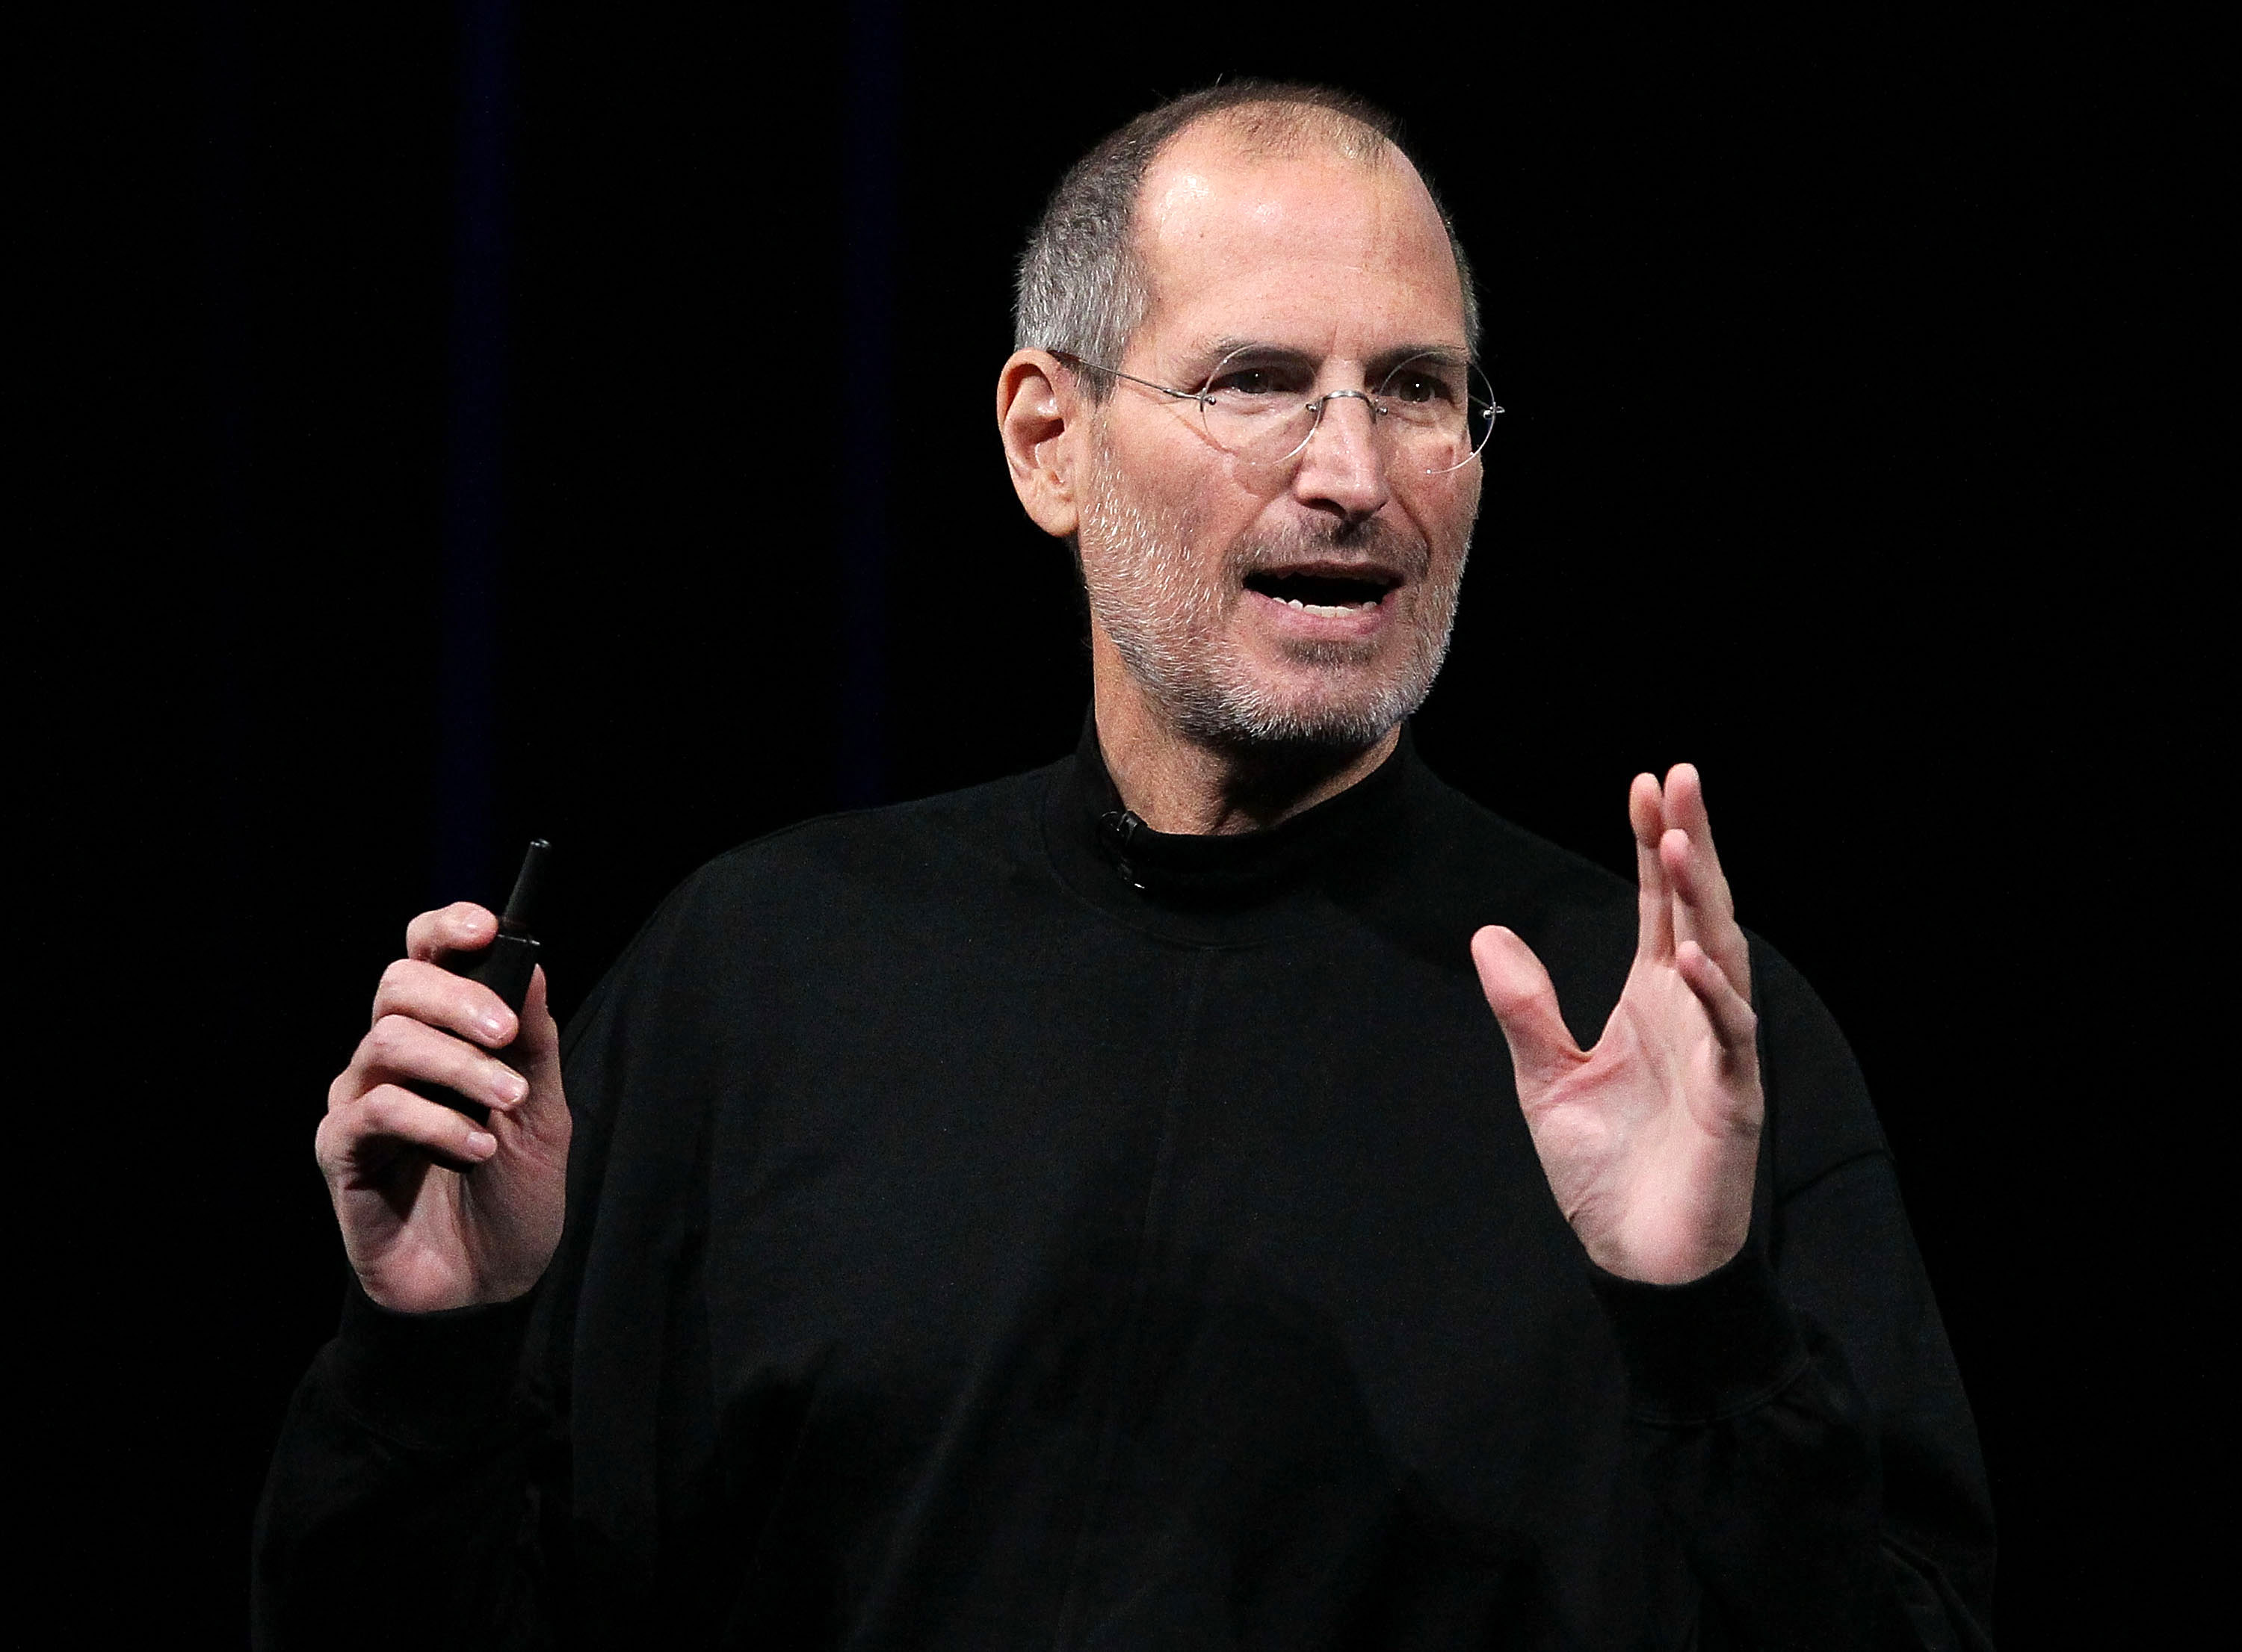 Steve Jobs at an Apple Special Event in San Francisco on Jan. 27, 2010.